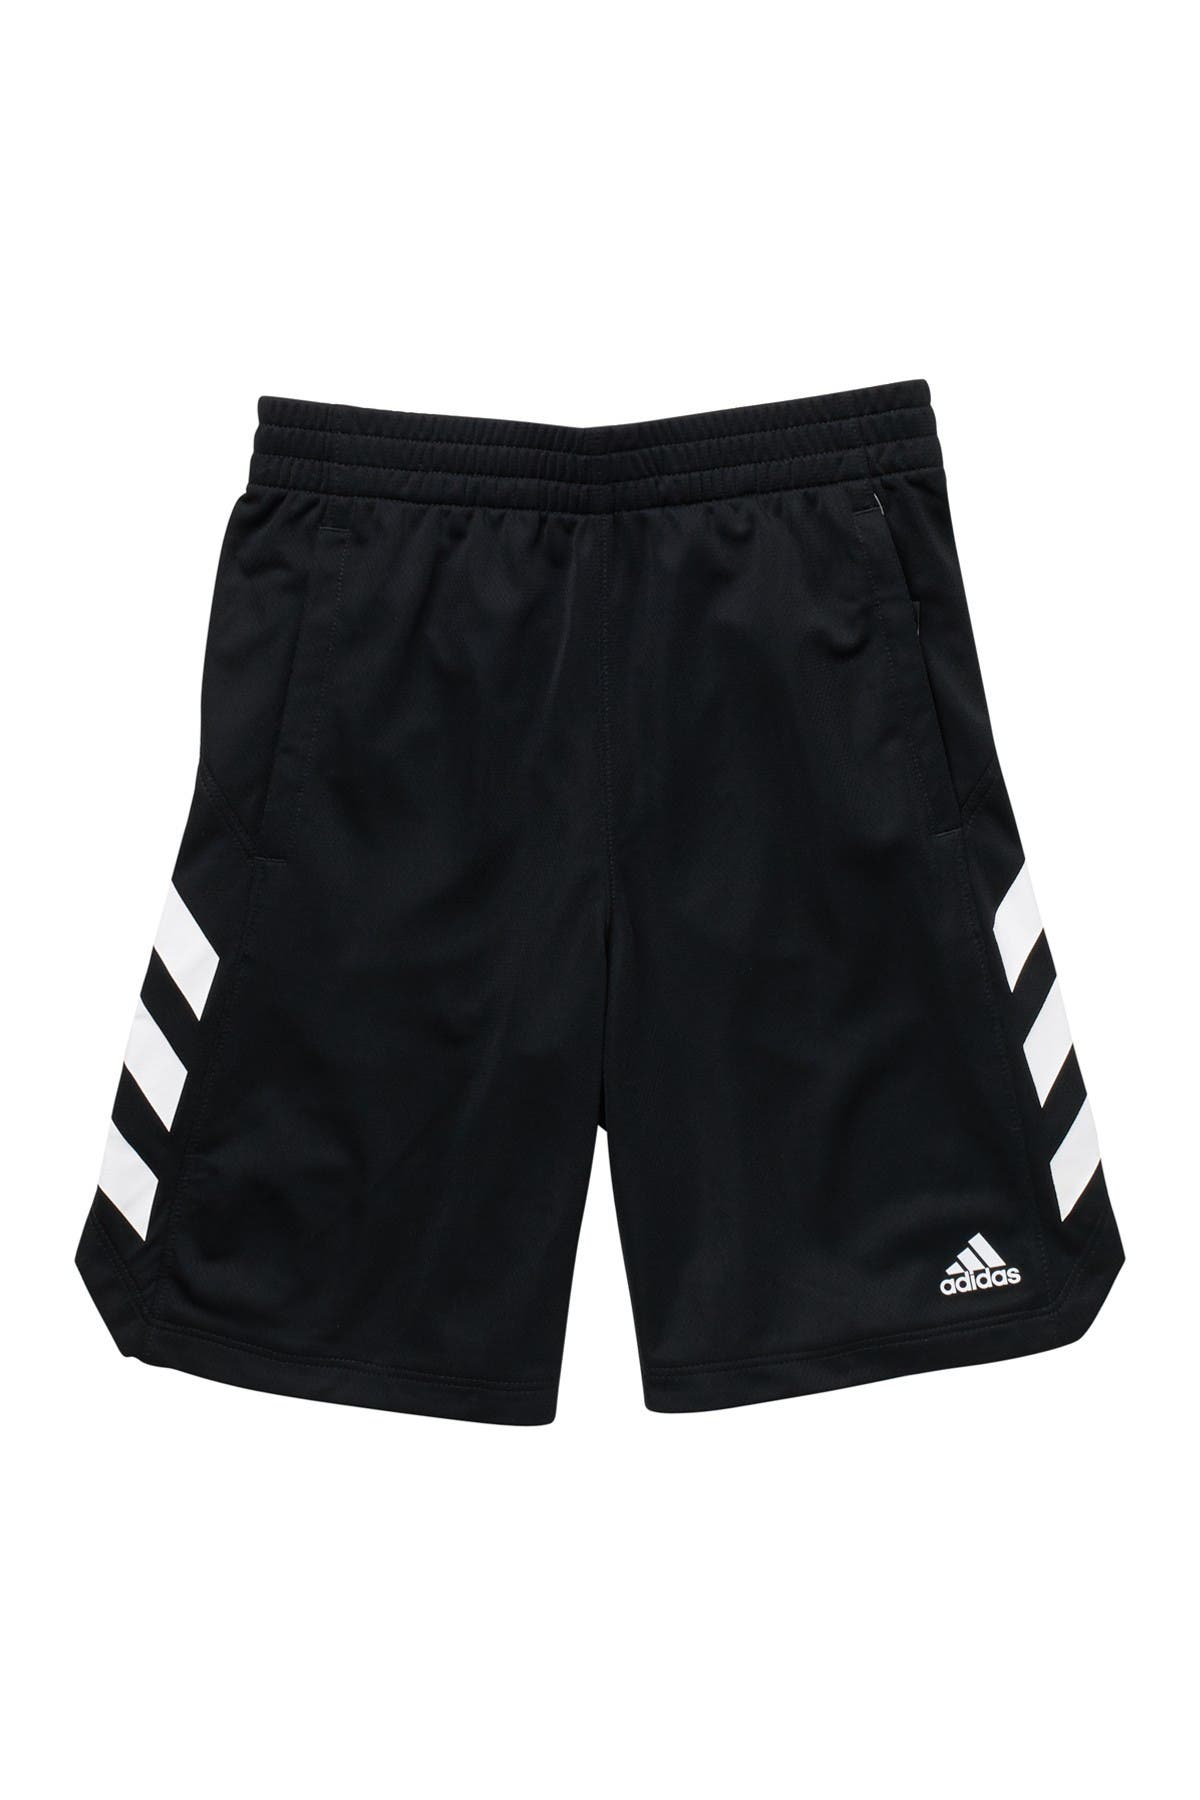 Image of ADIDAS ORIGINALS Basketball Shorts